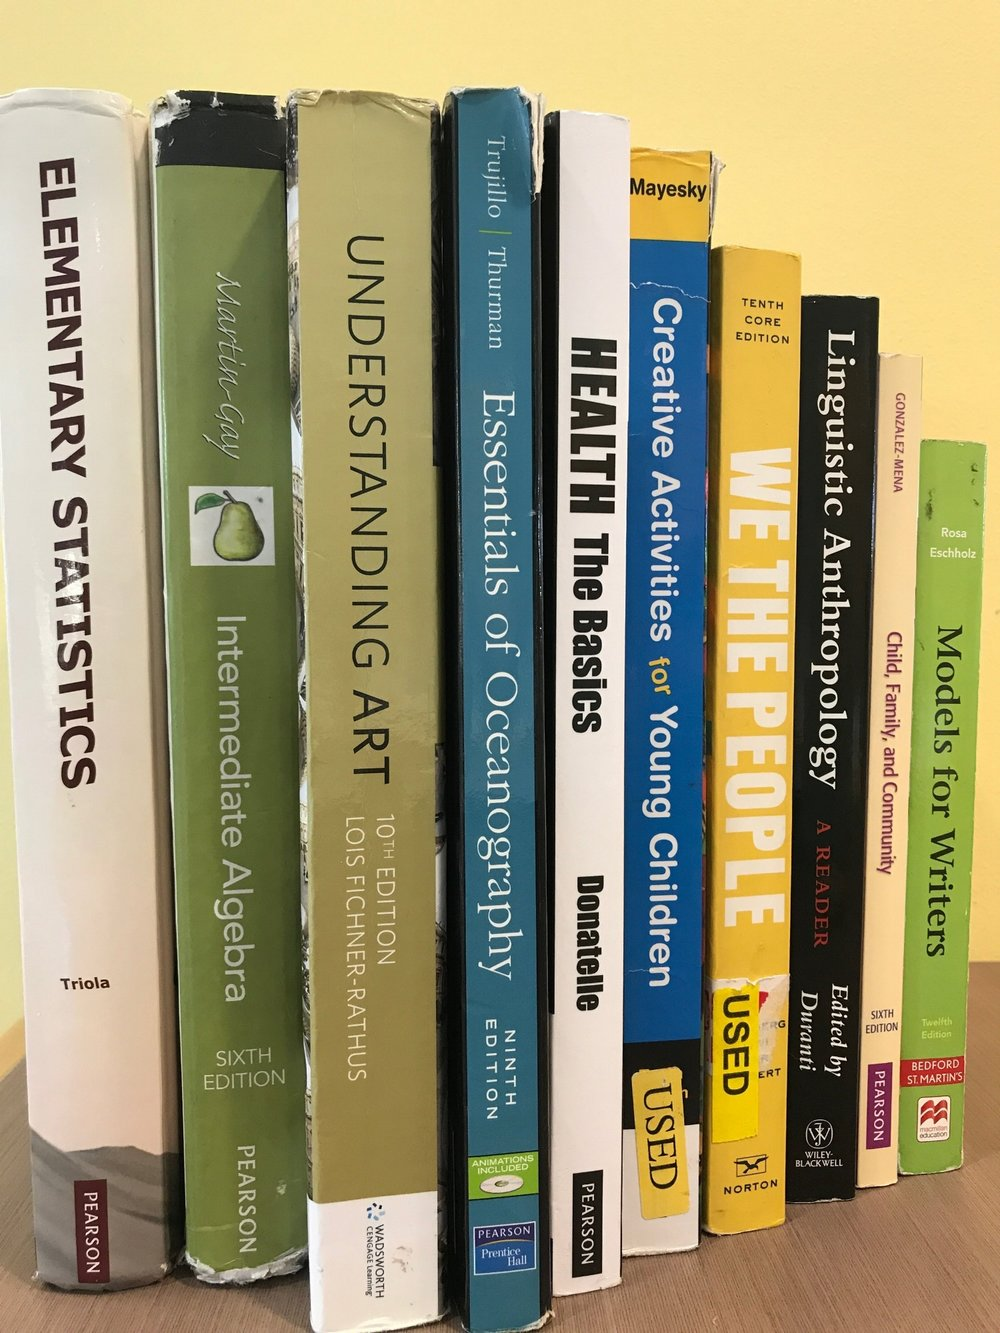 Textbook Lending Library - We get it! Textbooks are expensive. Come by to see if we have the books you need. If we do, check them out for the entire semester. If not, we can help you find a more affordable option.